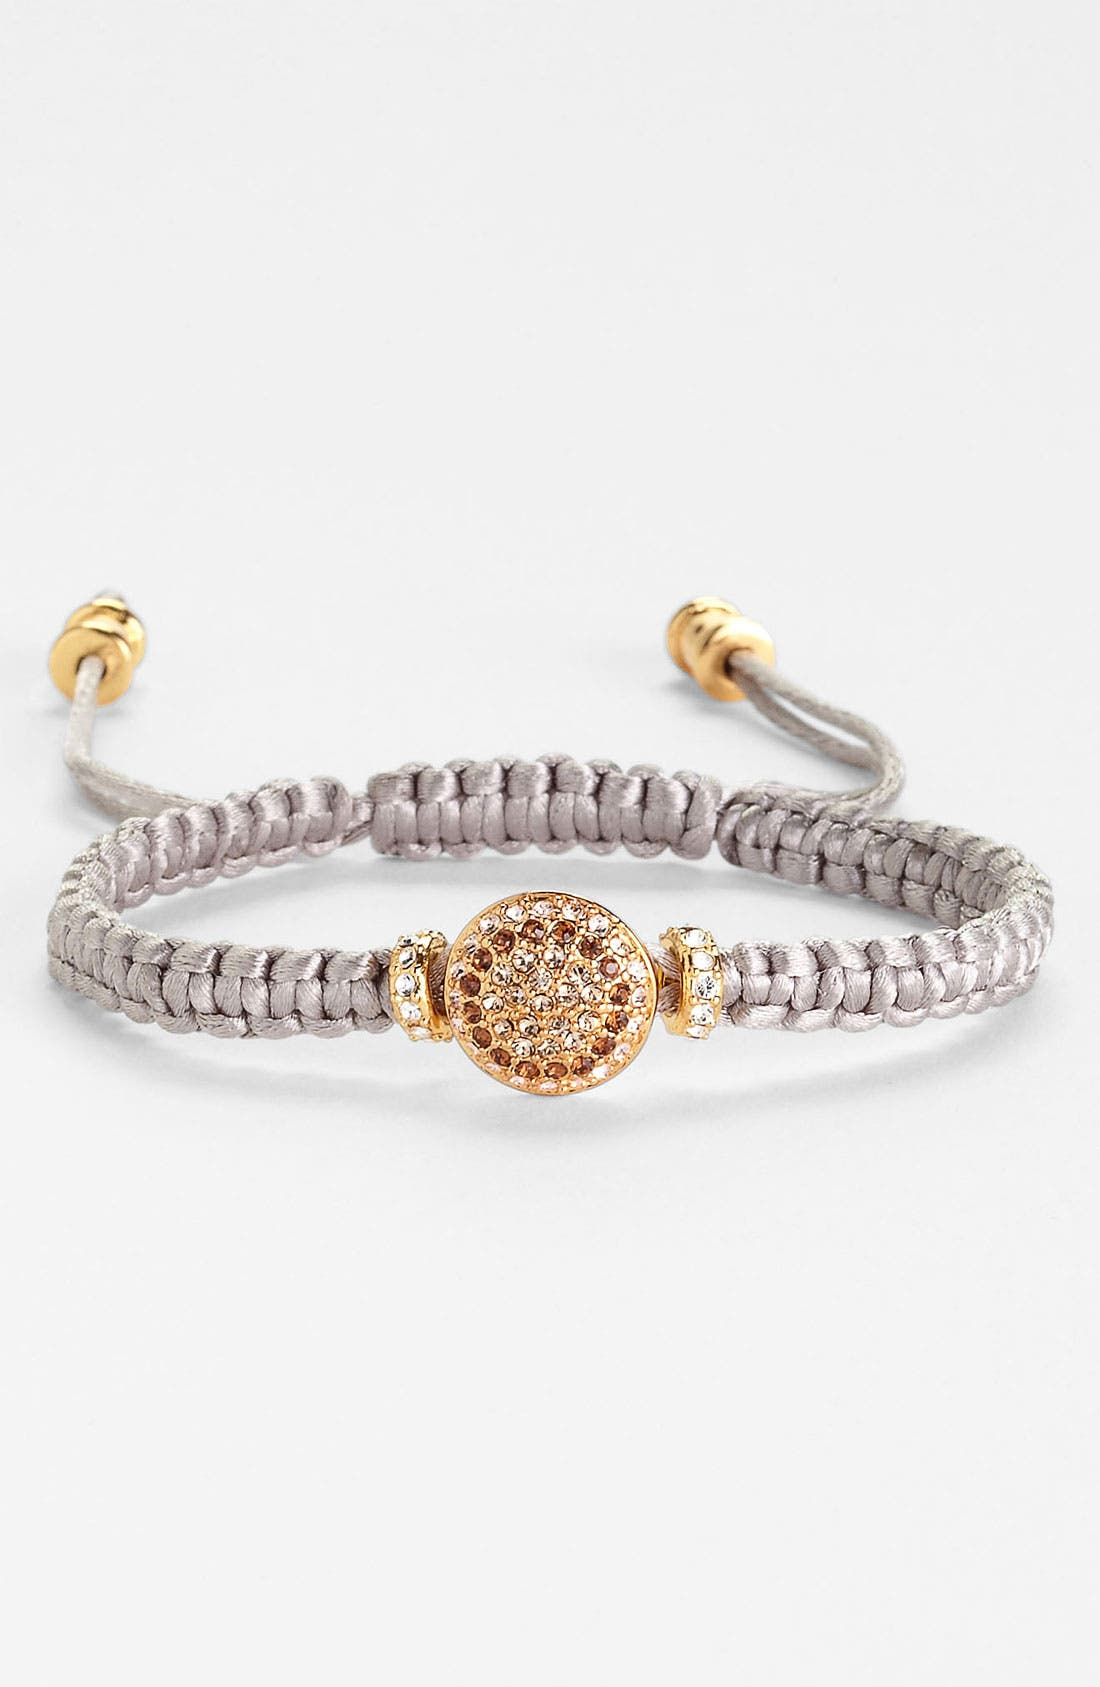 Alternate Image 1 Selected - Vince Camuto Macramé Bracelet